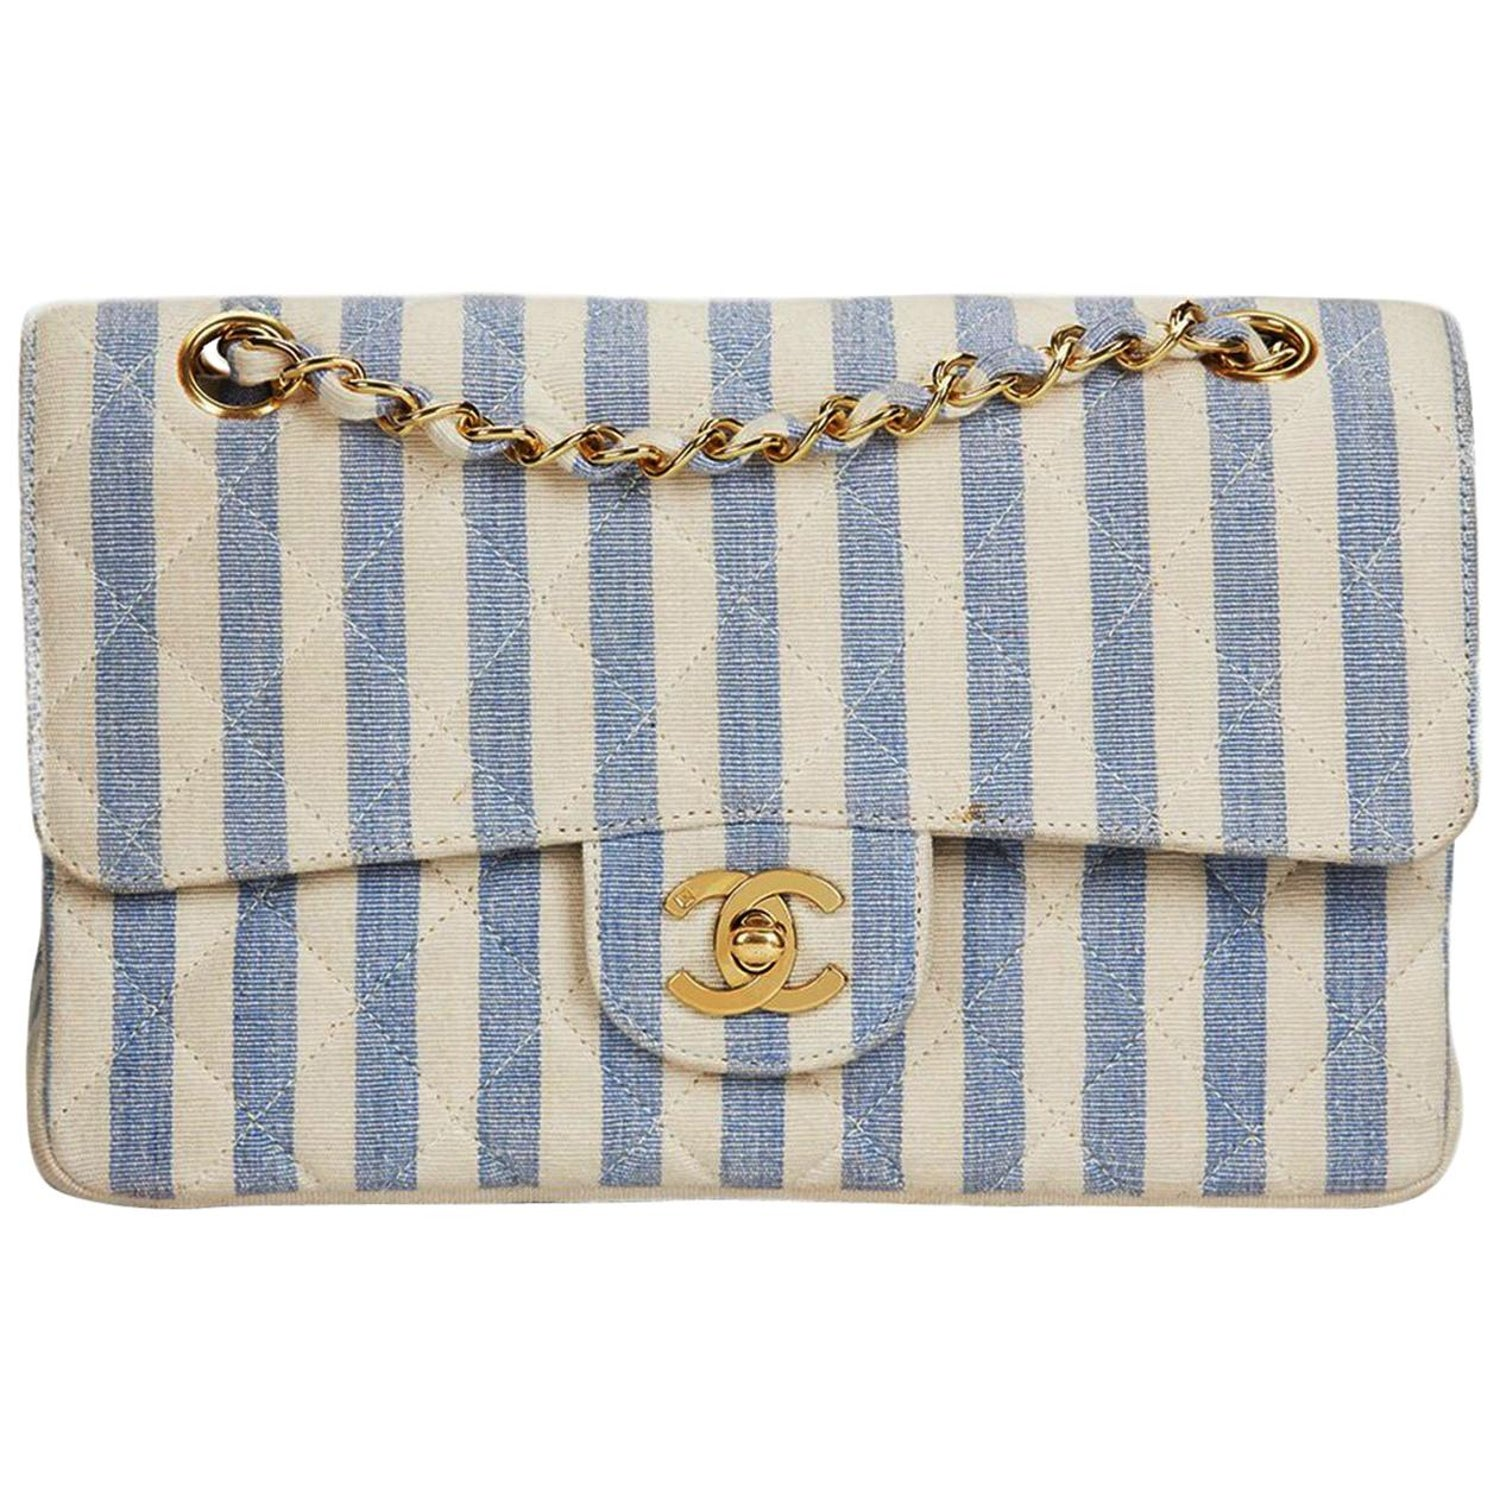 f3110da3dd5e Chanel Vintage 90s Striped Rare Blue and White Linen and Cotton Classic  Flap Bag at 1stdibs